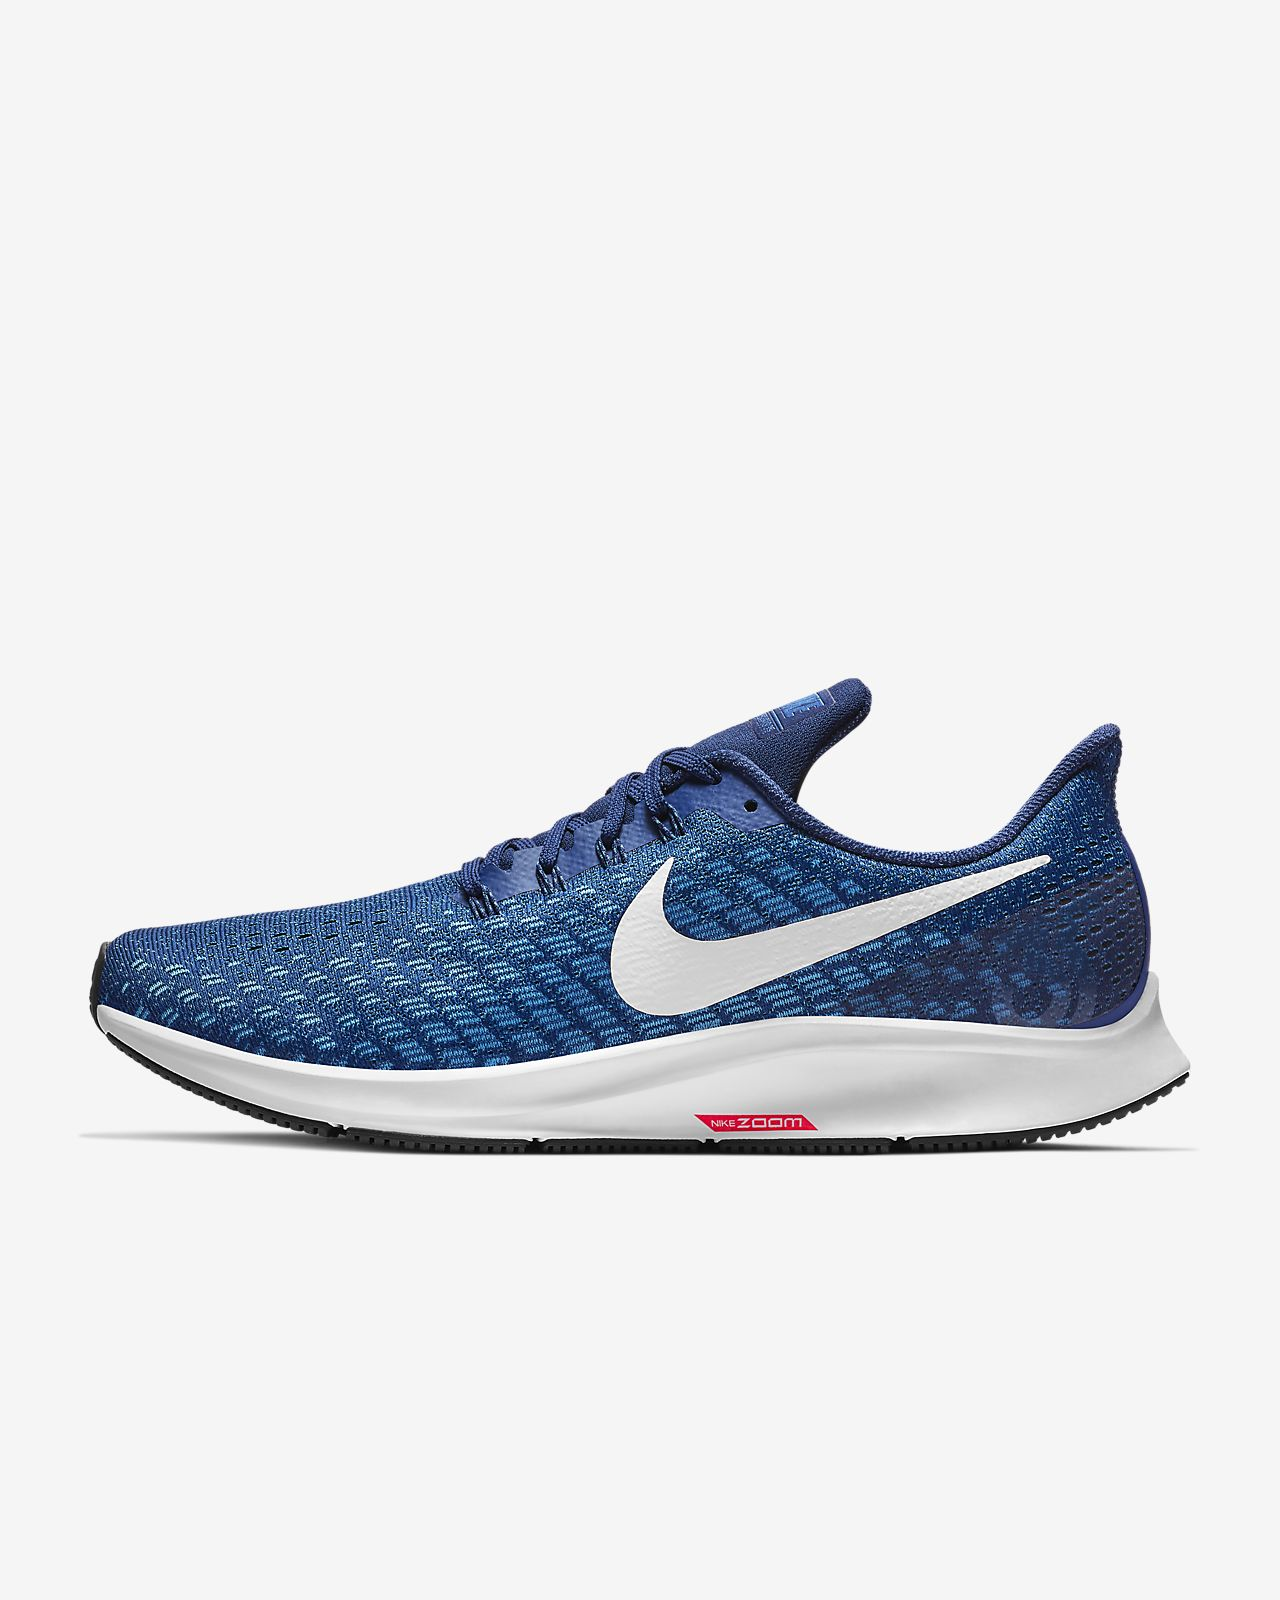 127e5d964cf Nike Air Zoom Pegasus 35 Men s Running Shoe. Nike.com CA